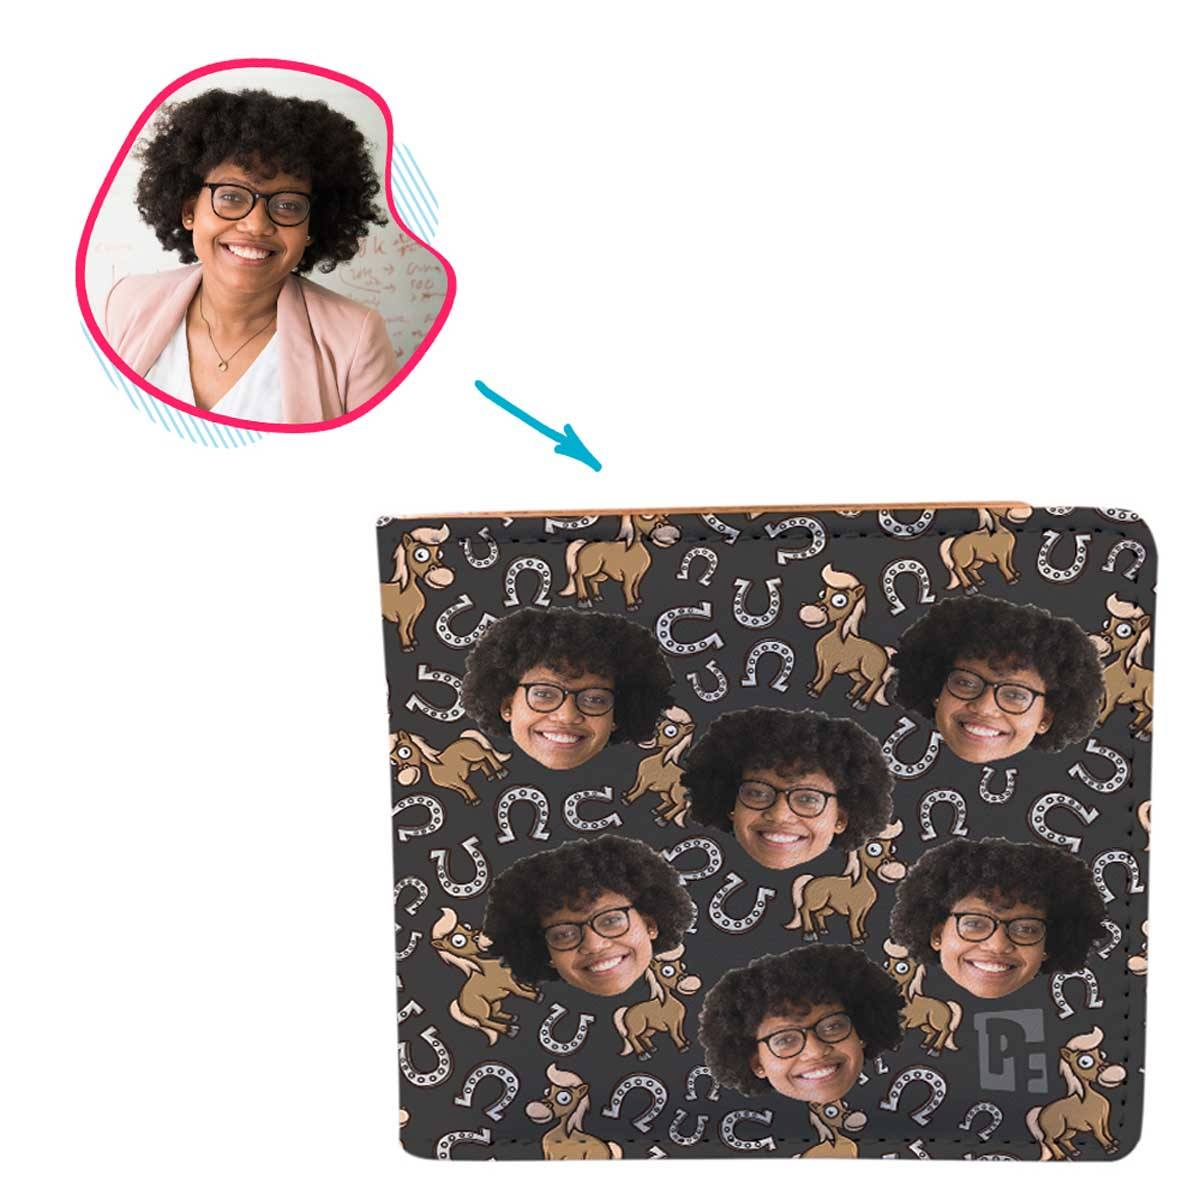 dark Horse wallet personalized with photo of face printed on it